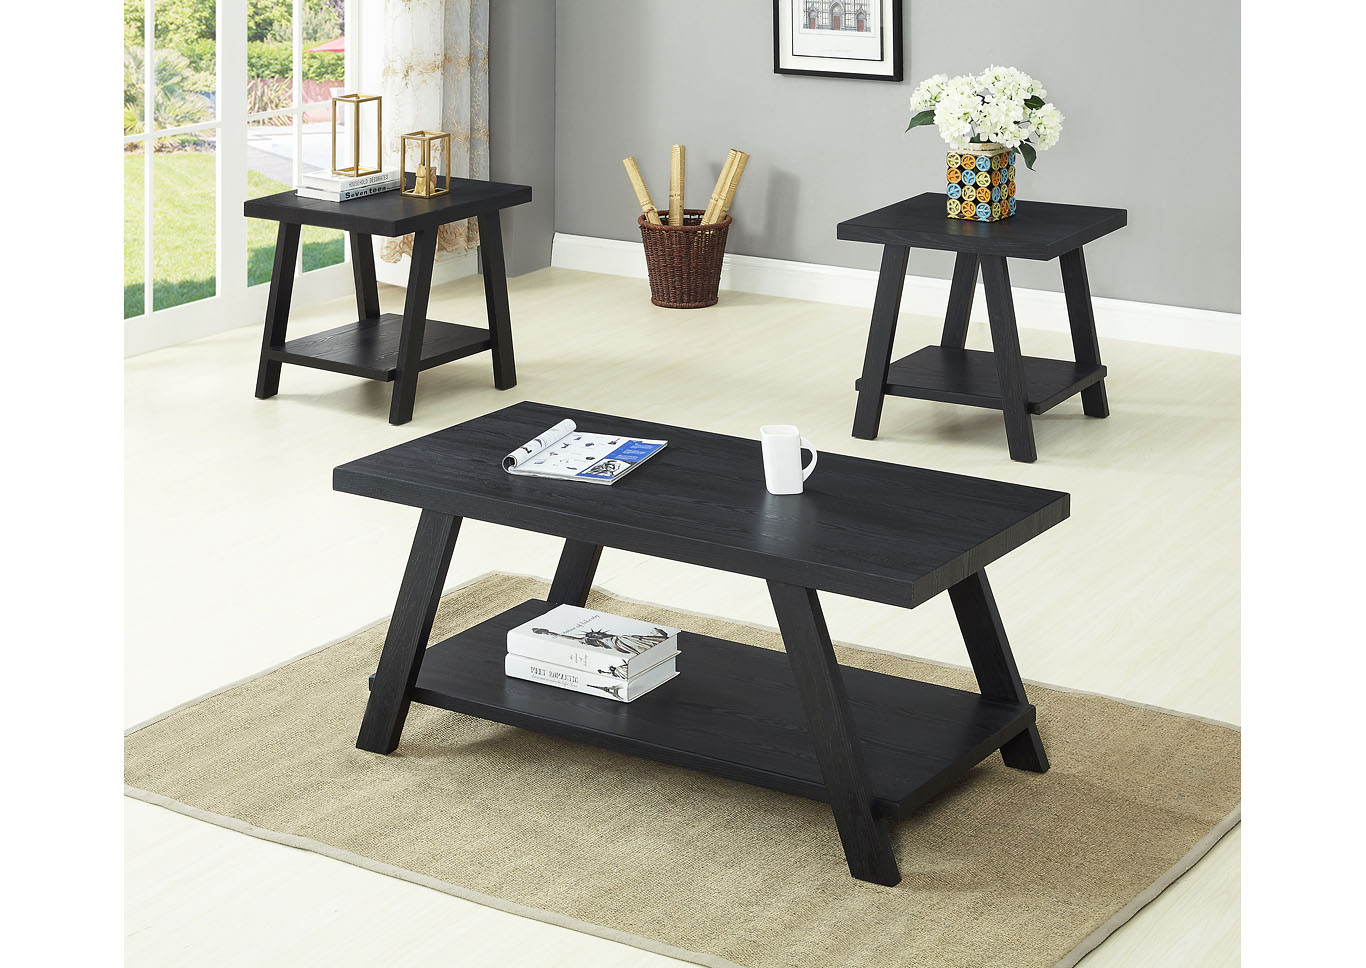 Black 3 Piece Coffee & End Table Set,Global Trading